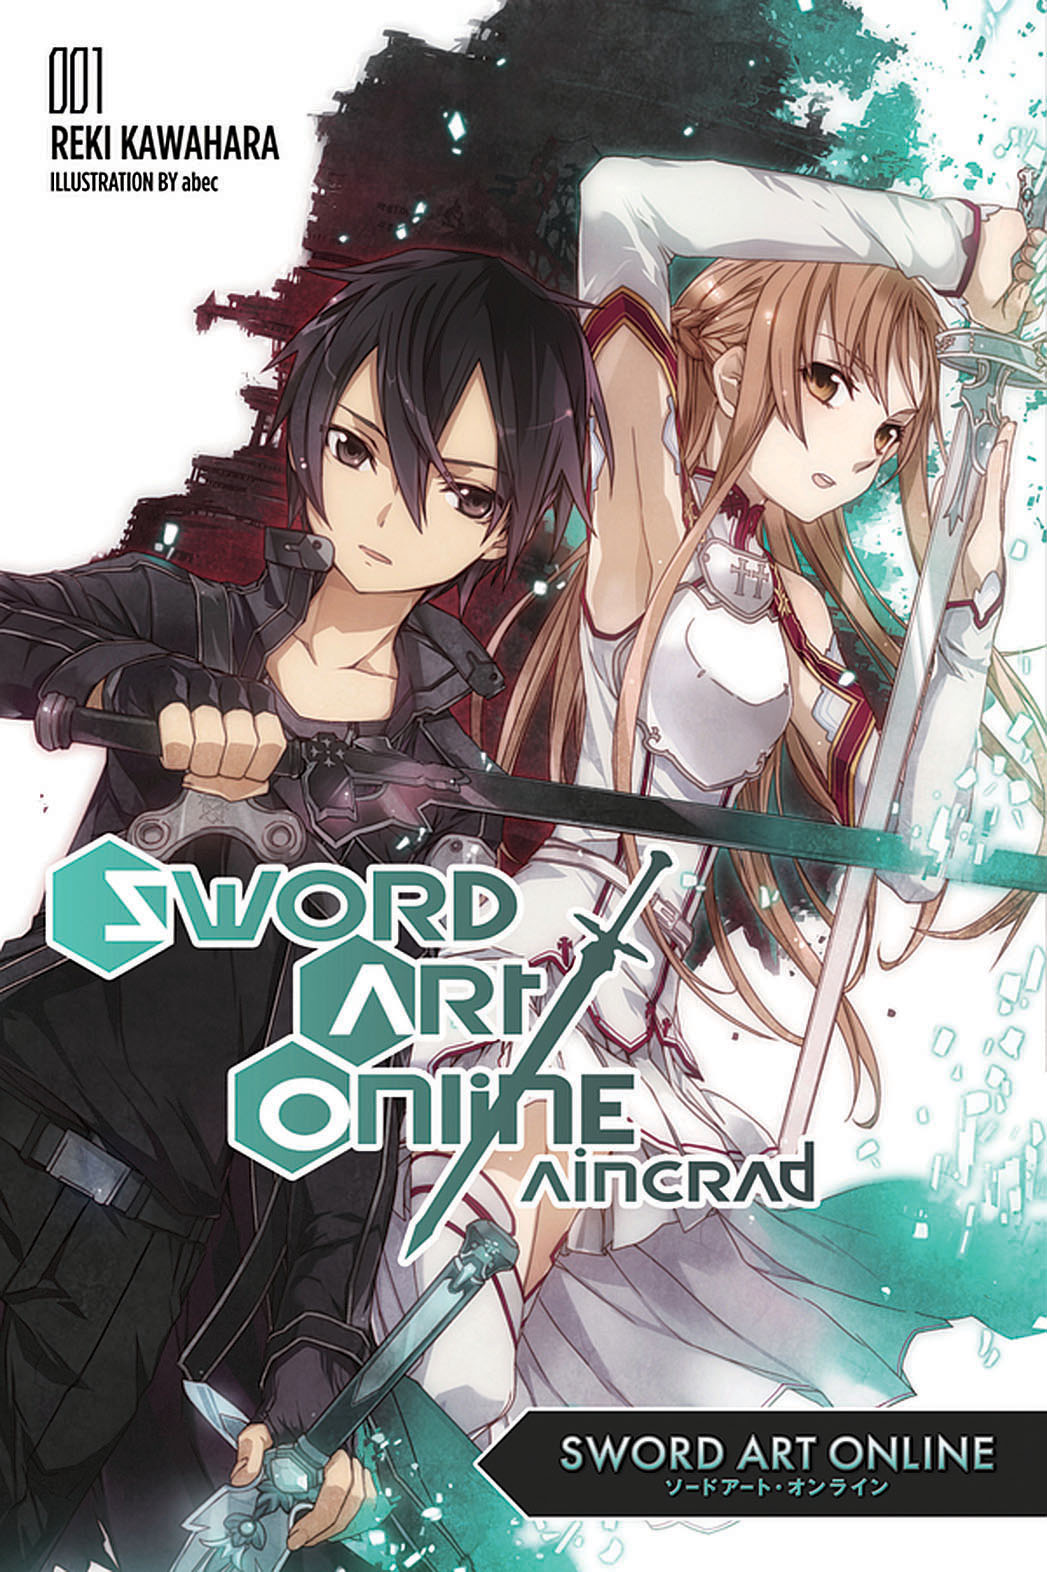 Sword Art Online book cover - P 2016